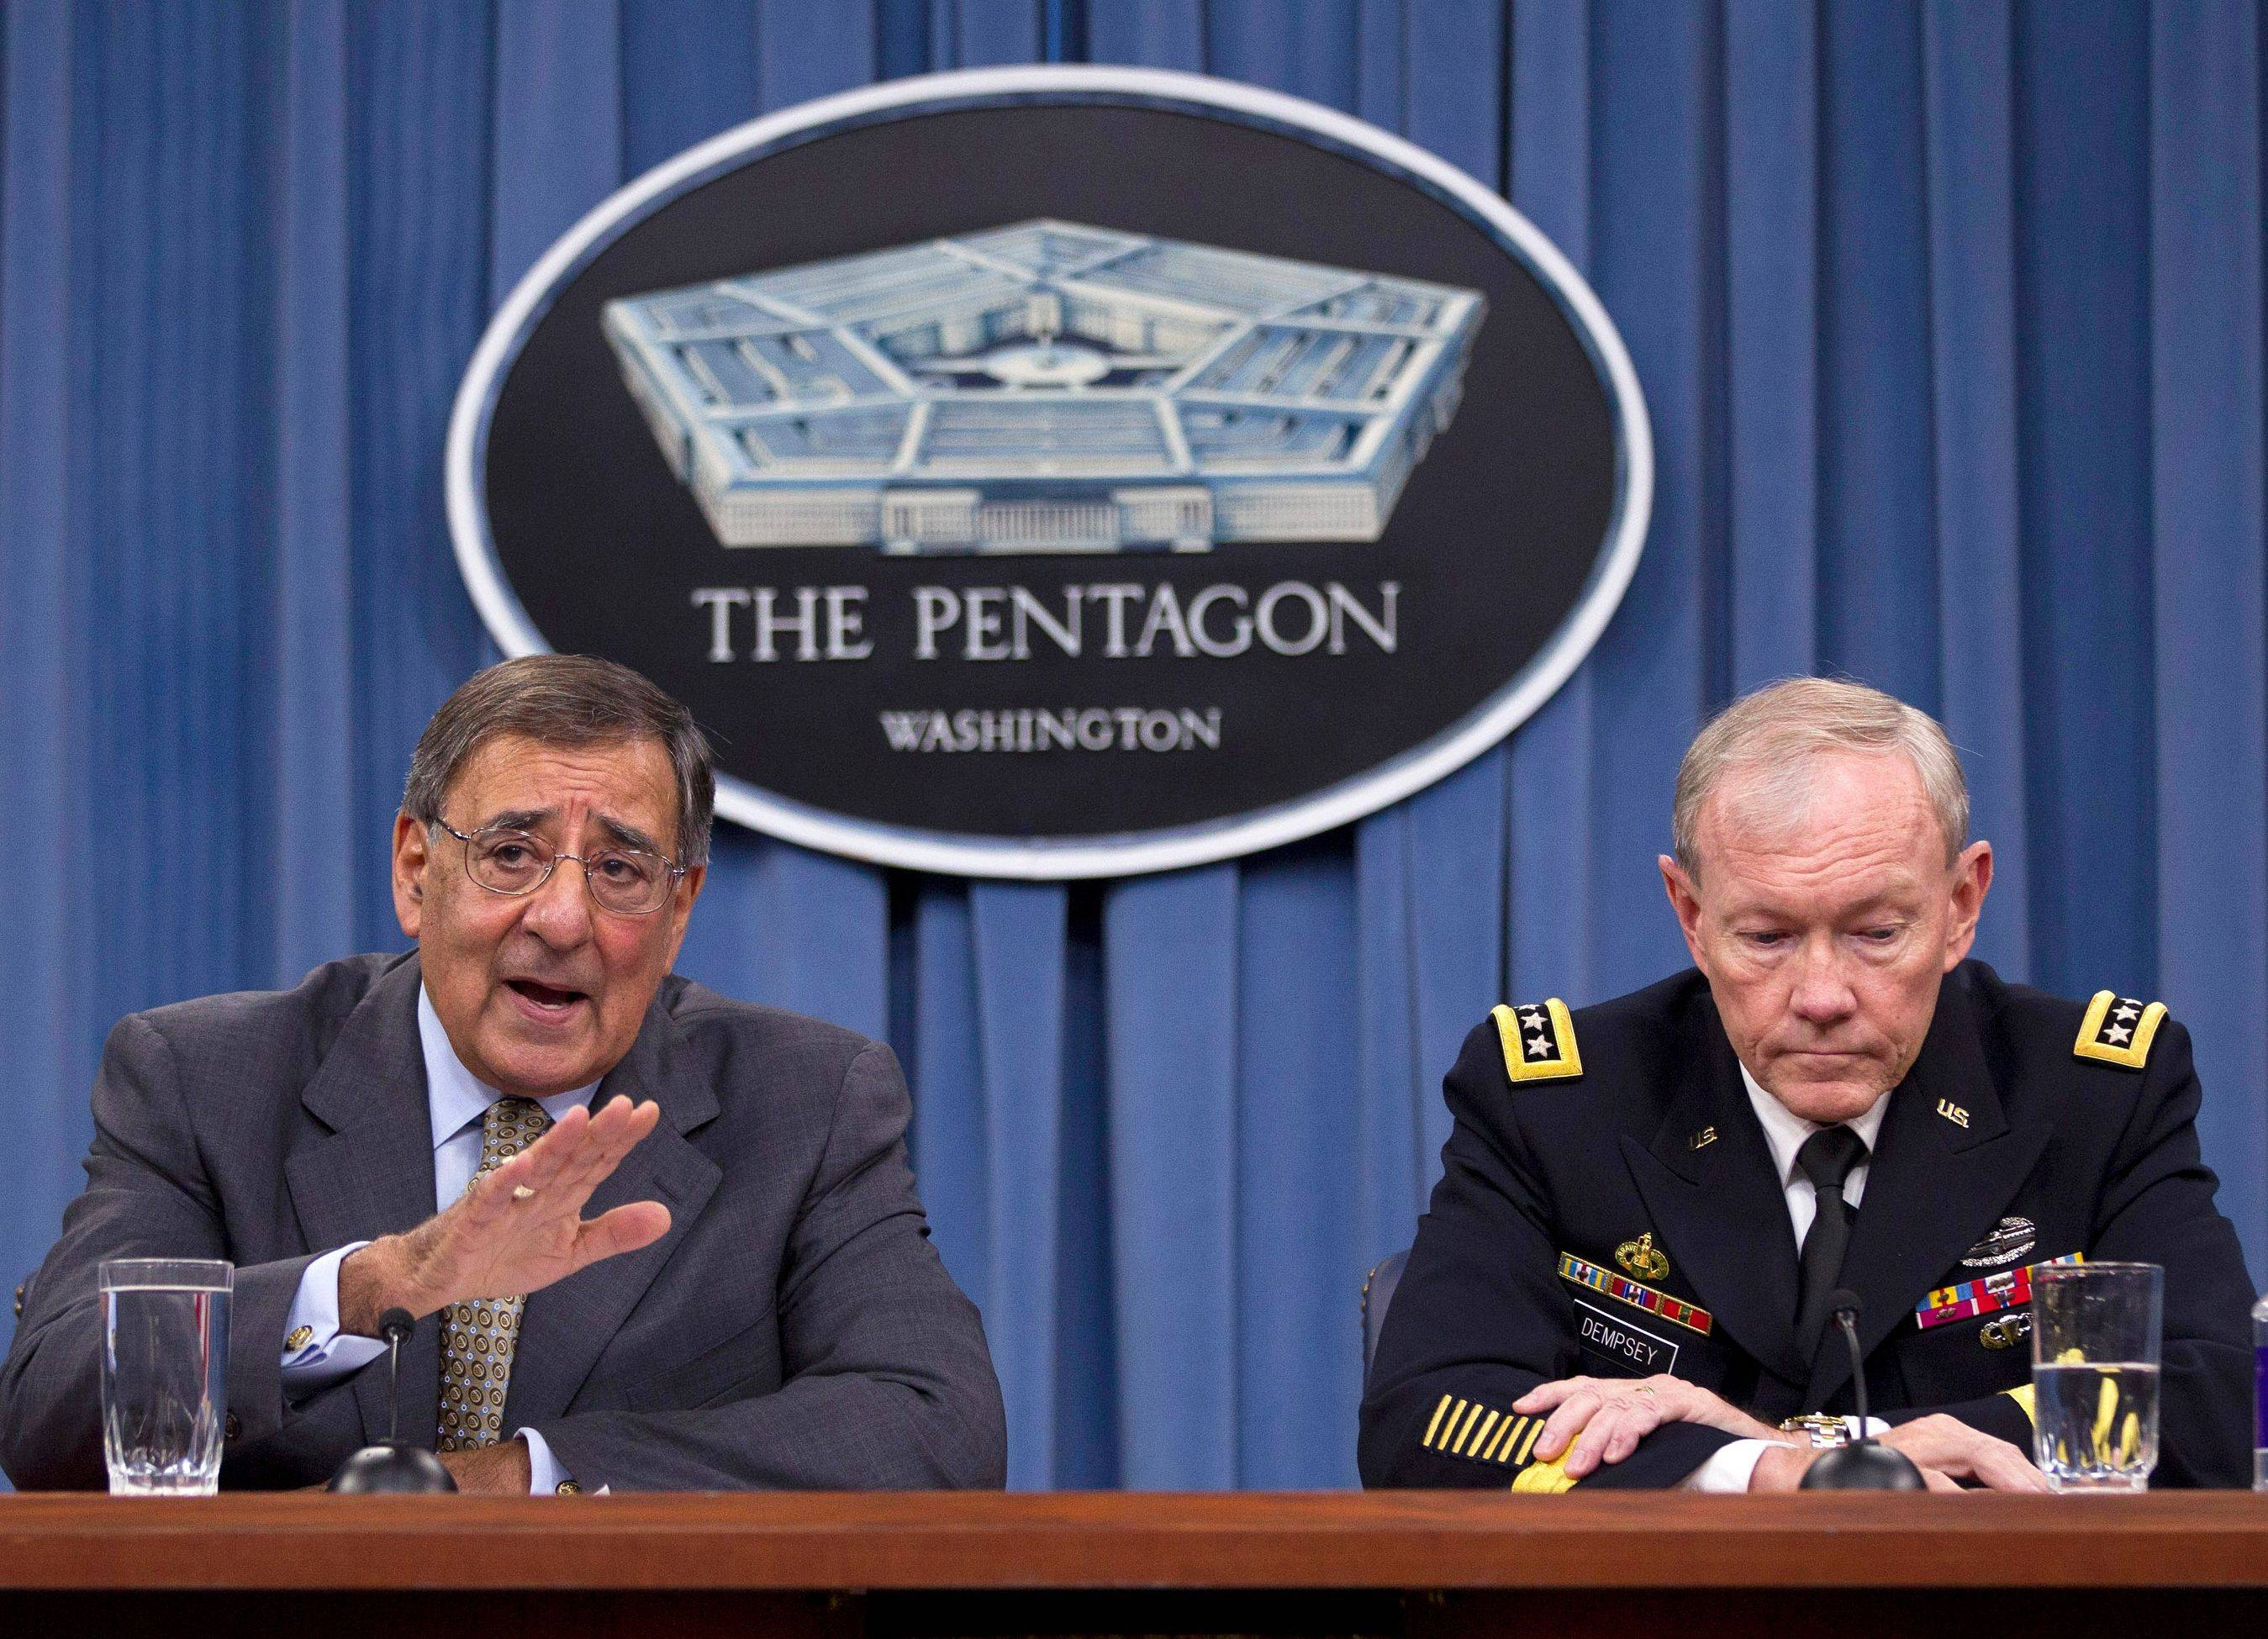 In this June 29, 2012 file photo, Defense Secretary Leon Panetta, left, accompanied by Joint Chiefs Chairman Gen. Martin Dempsey, gestures during a news conference at the Pentagon. Panetta and Dempsey say Iran has increased its presence in Syria, aiding the regime in fighting opposition looking to overthrow President Bashar Assad.